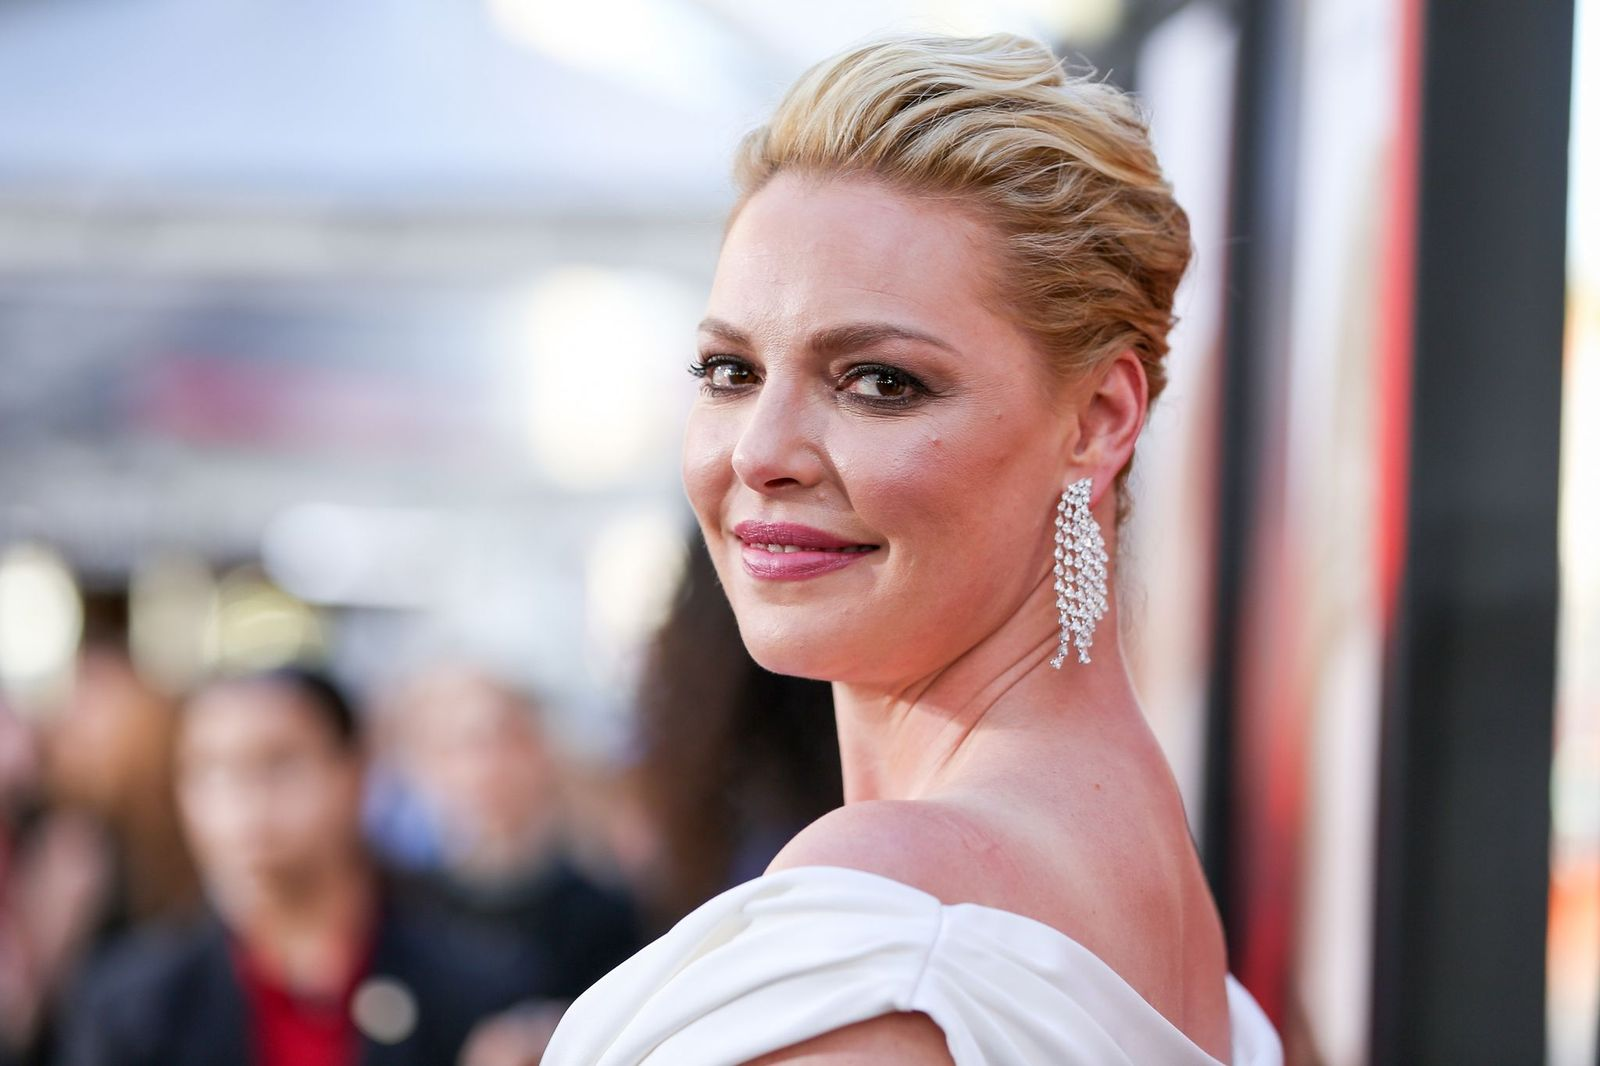 Katherine Heigl attending red carpet event/Photo:Getty Images